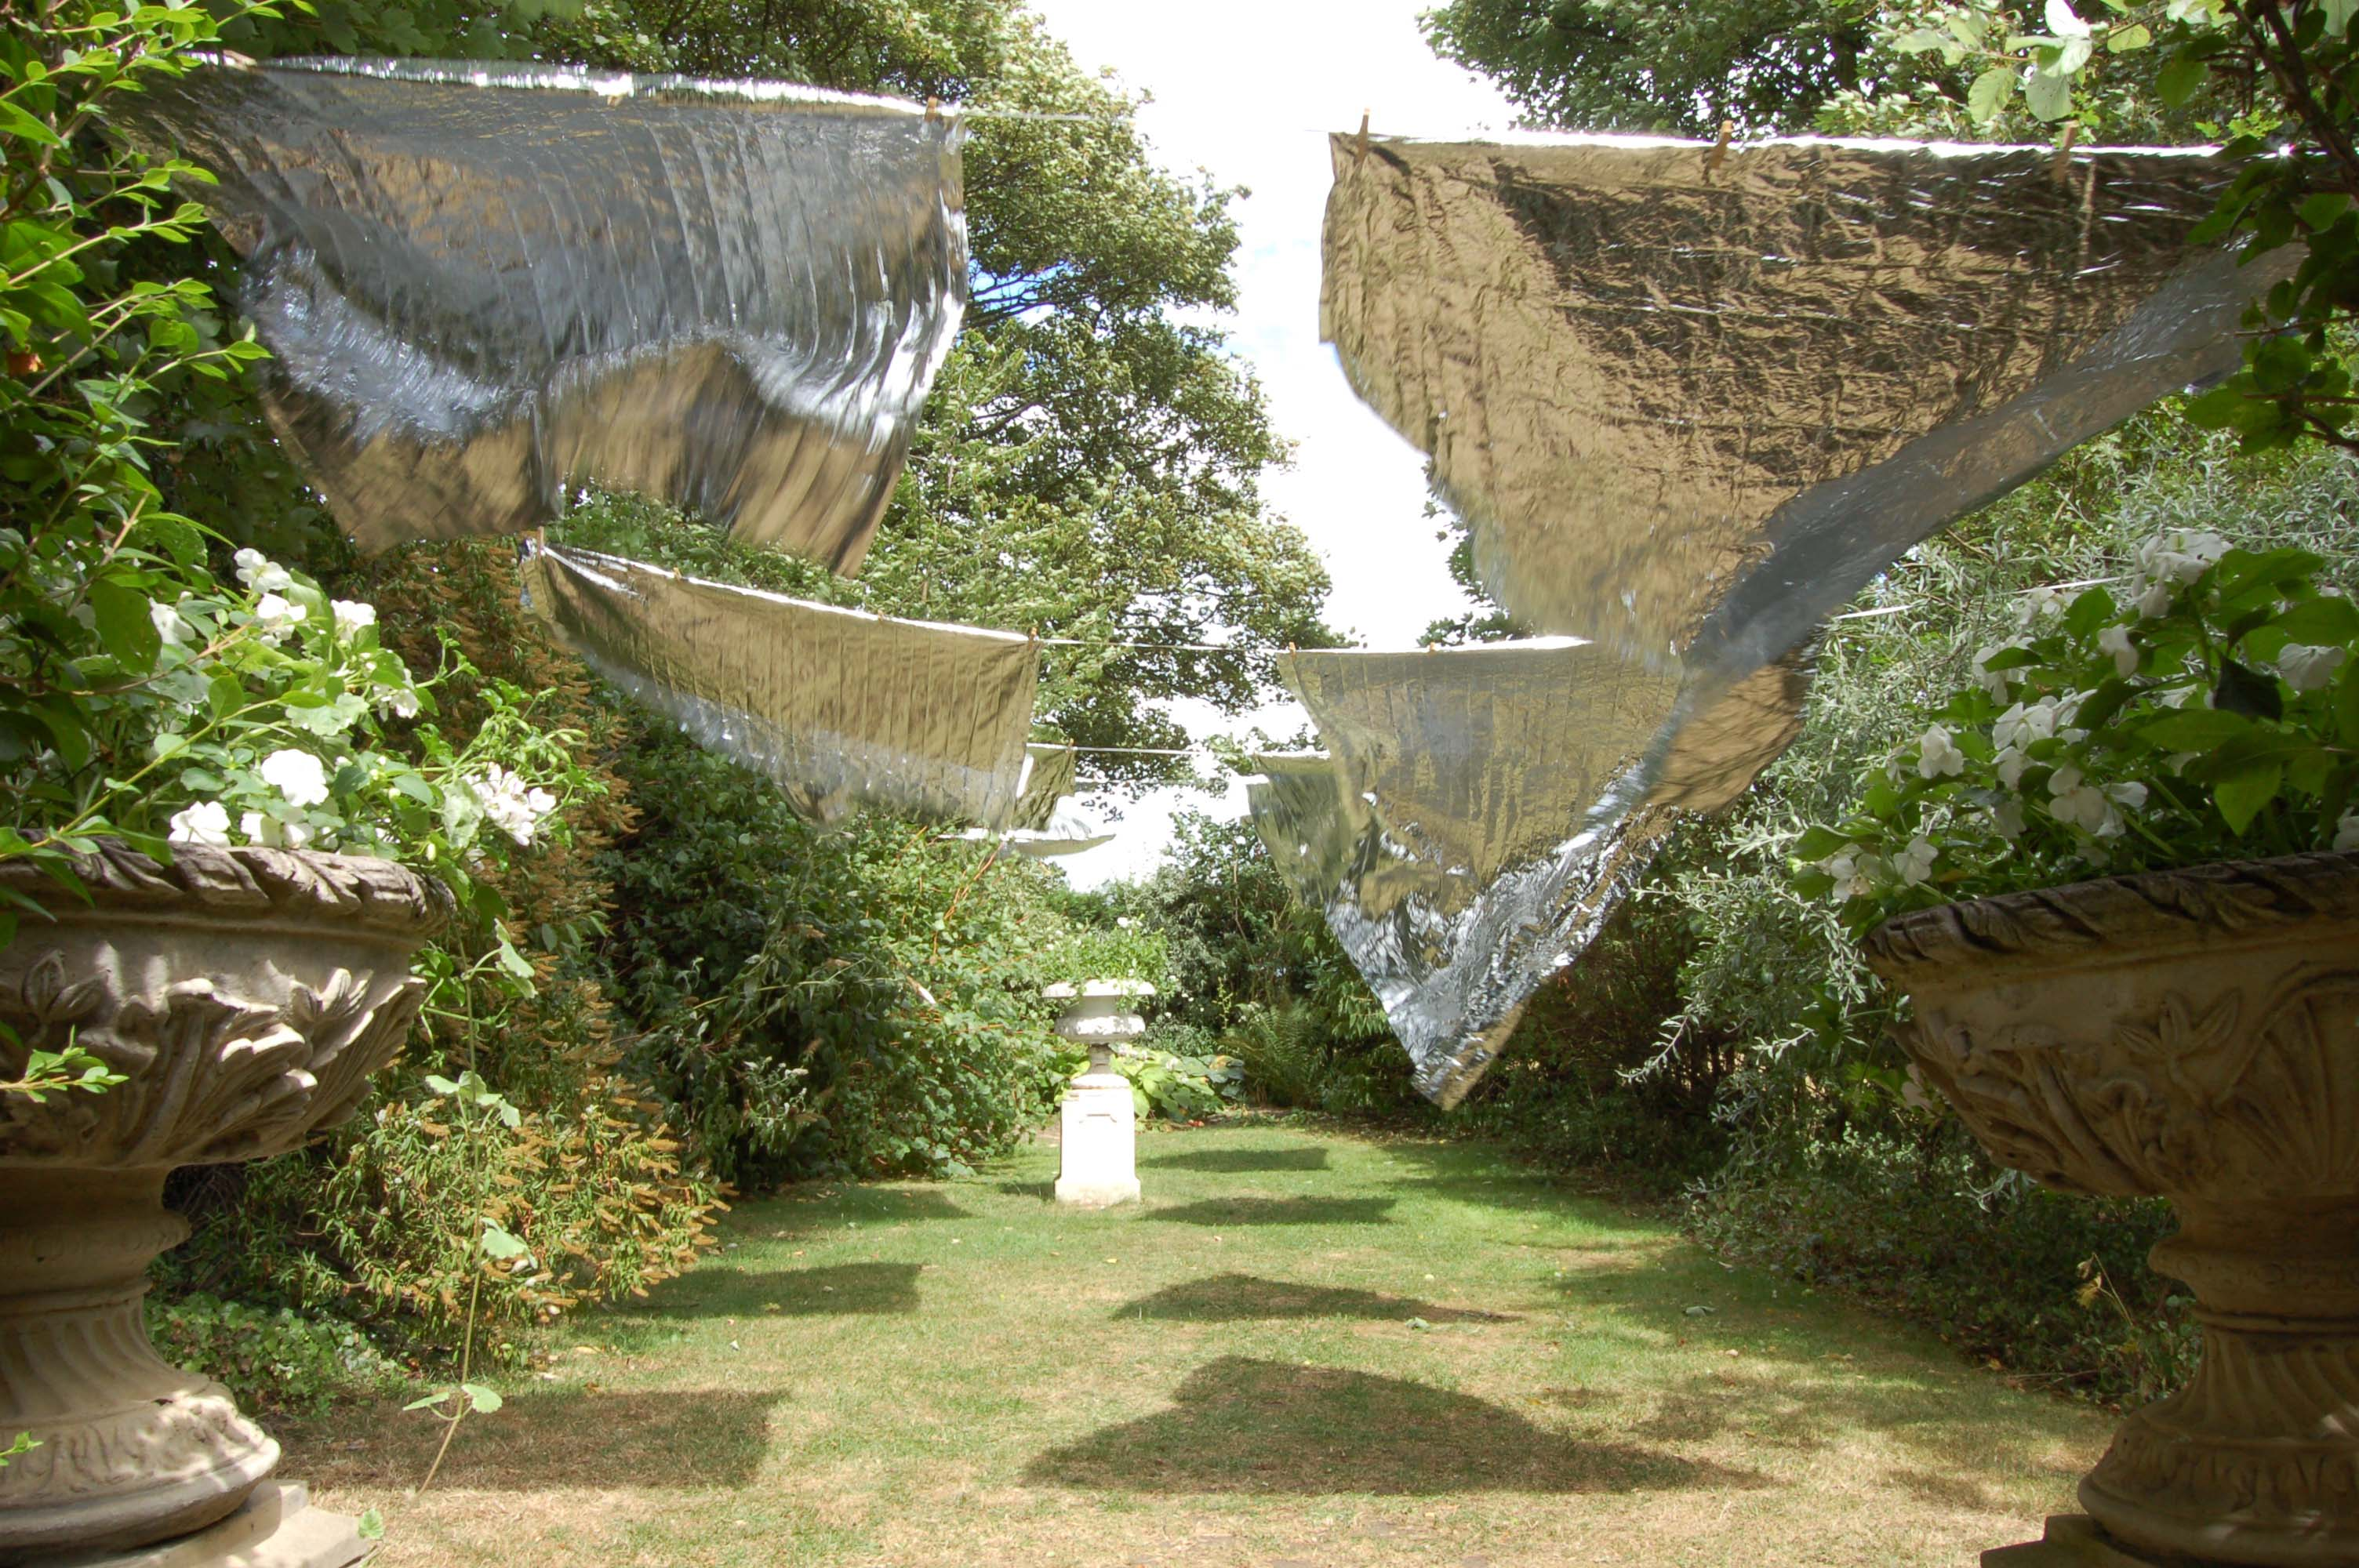 'Laundry Day' 2006, site specific installation by Wendy Hardie